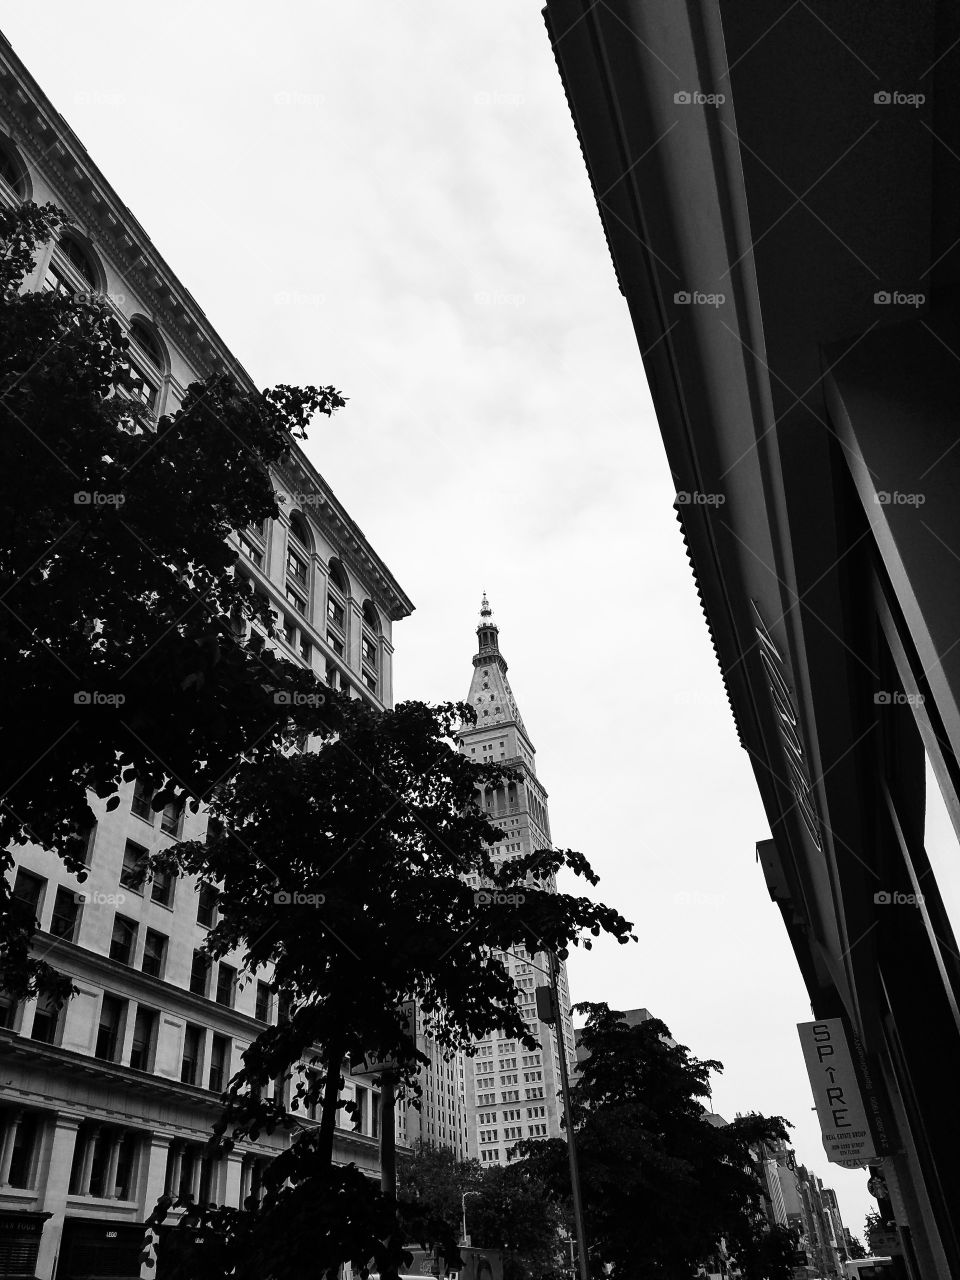 NYC Architecture in Flat Iron on 23rd Street near Madison Square Park. Taken with Android Phone. BNW Filter. May 2017.